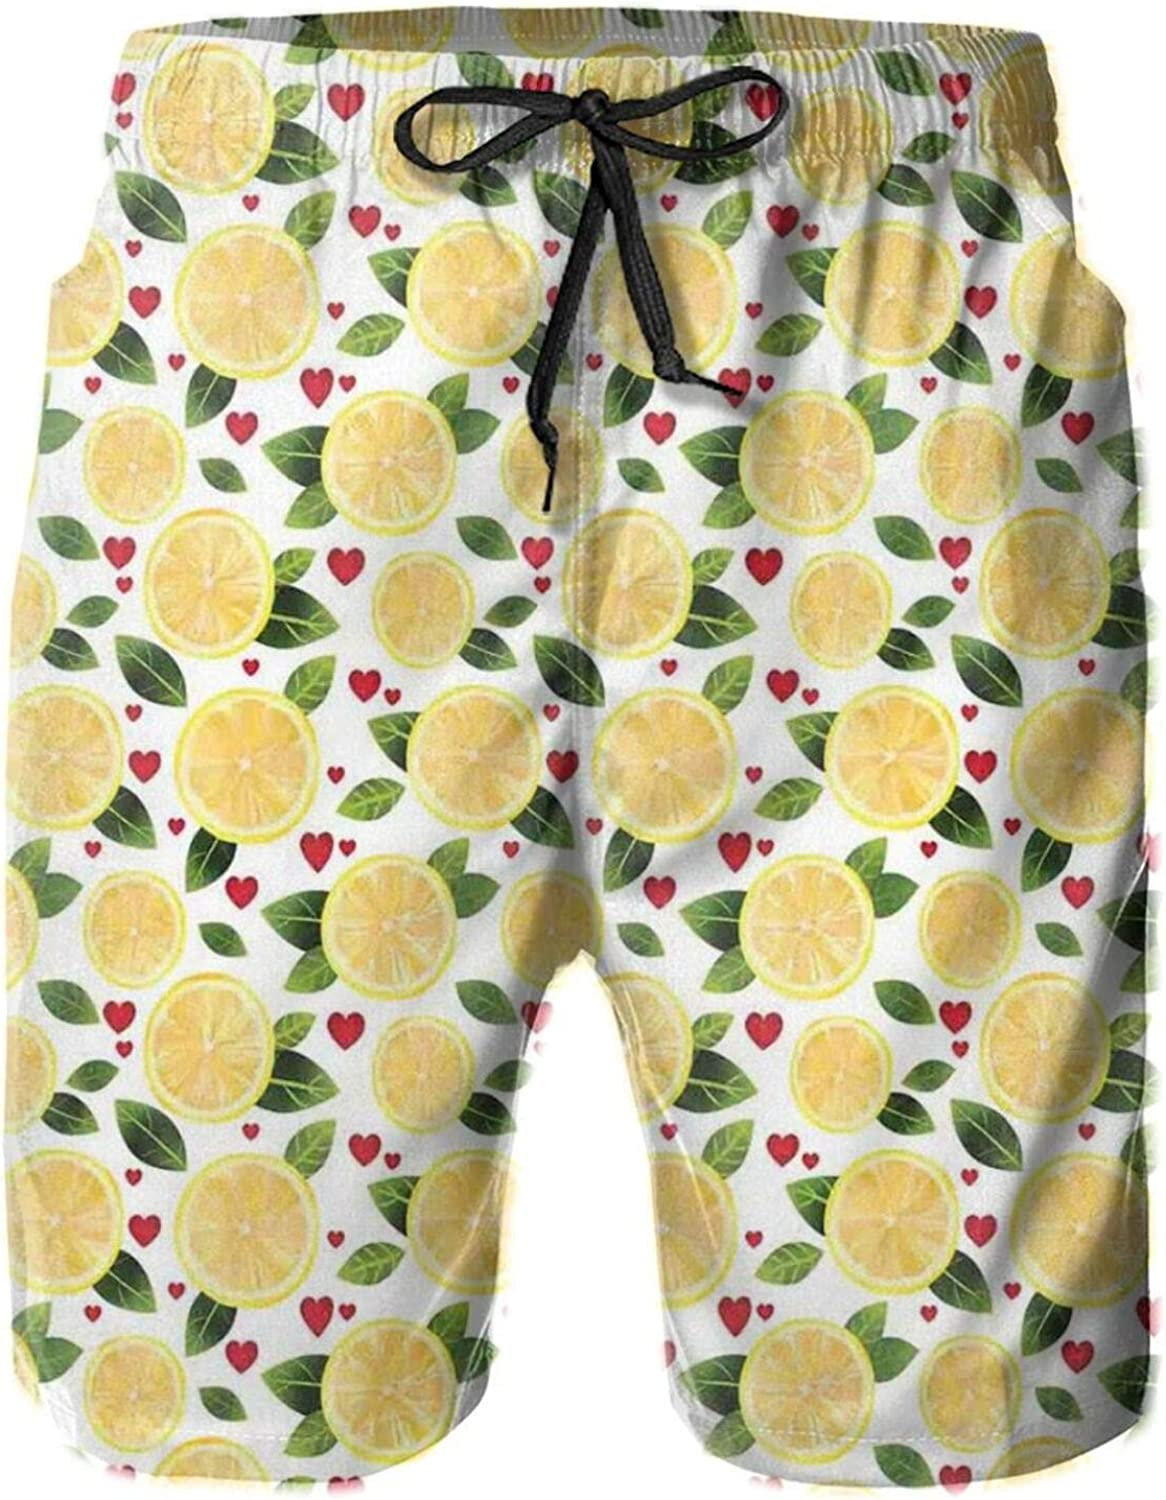 Lemon Slices with Leaves and Hearts Kitchen Menu Valentines Care Pattern Drawstring Waist Beach Shorts for Men Swim Trucks Board Shorts with Mesh Lining,L